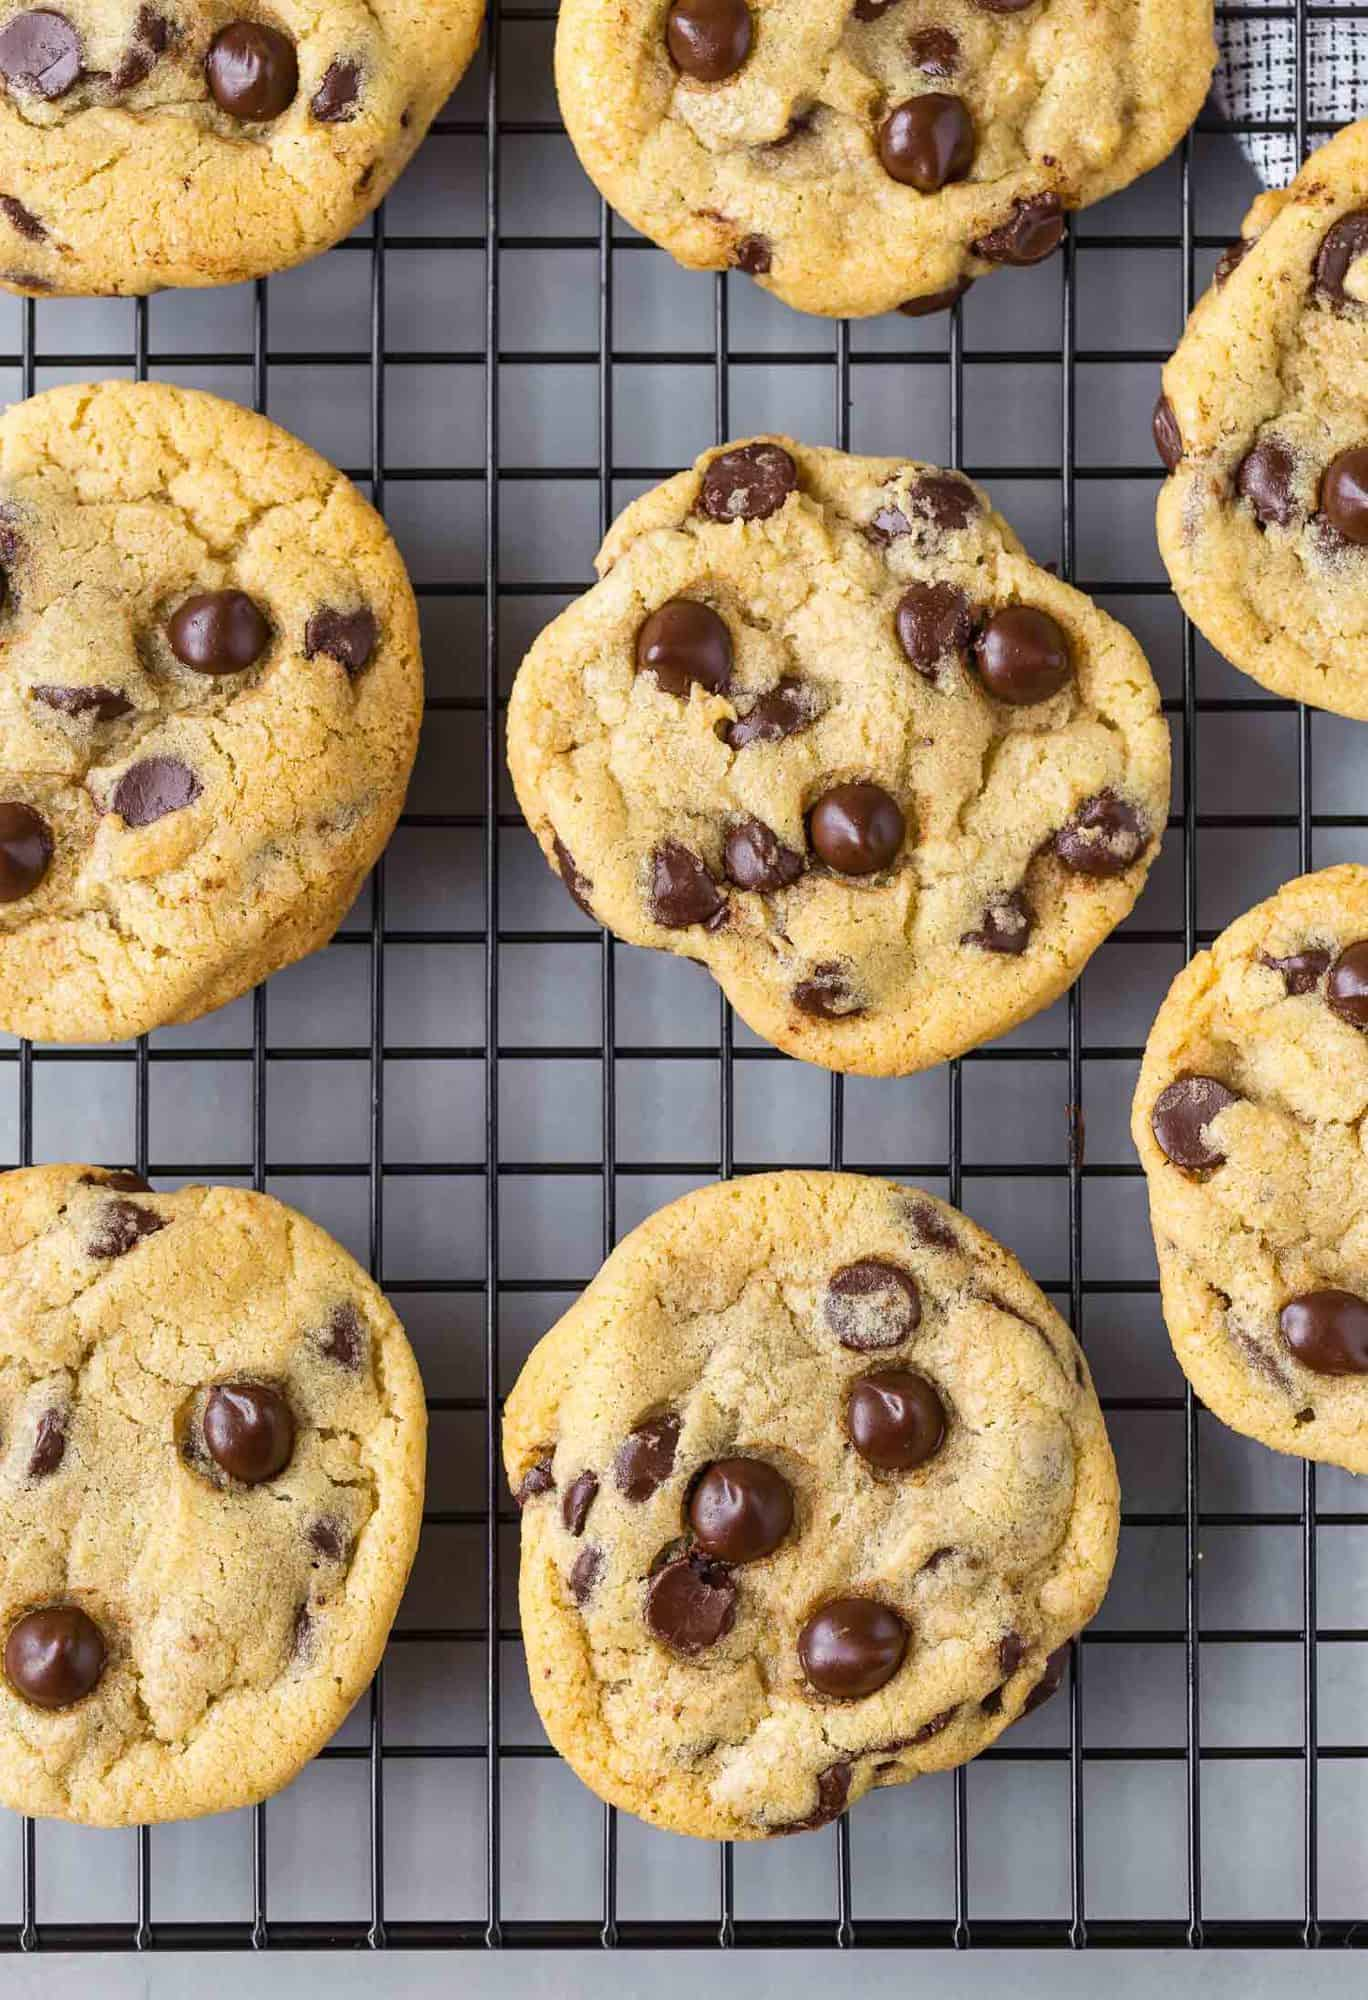 Close-up image of chewy chocolate chip cookies on a cooling rack.